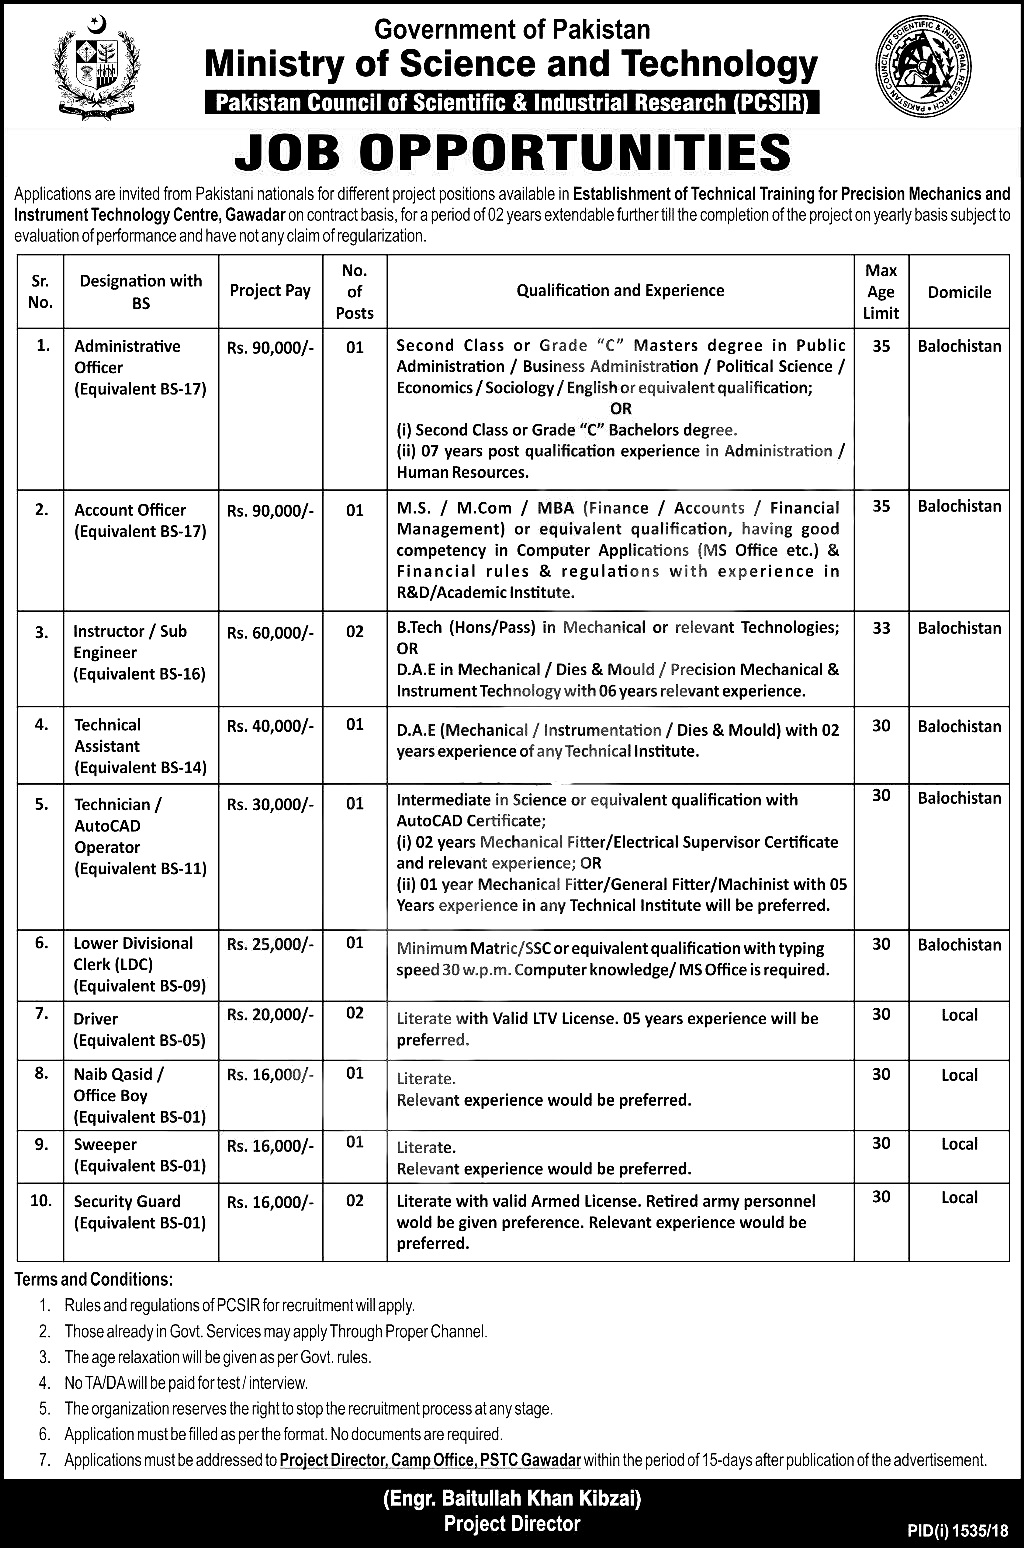 Ministry of Science and Technology Pakistan jobs 2018